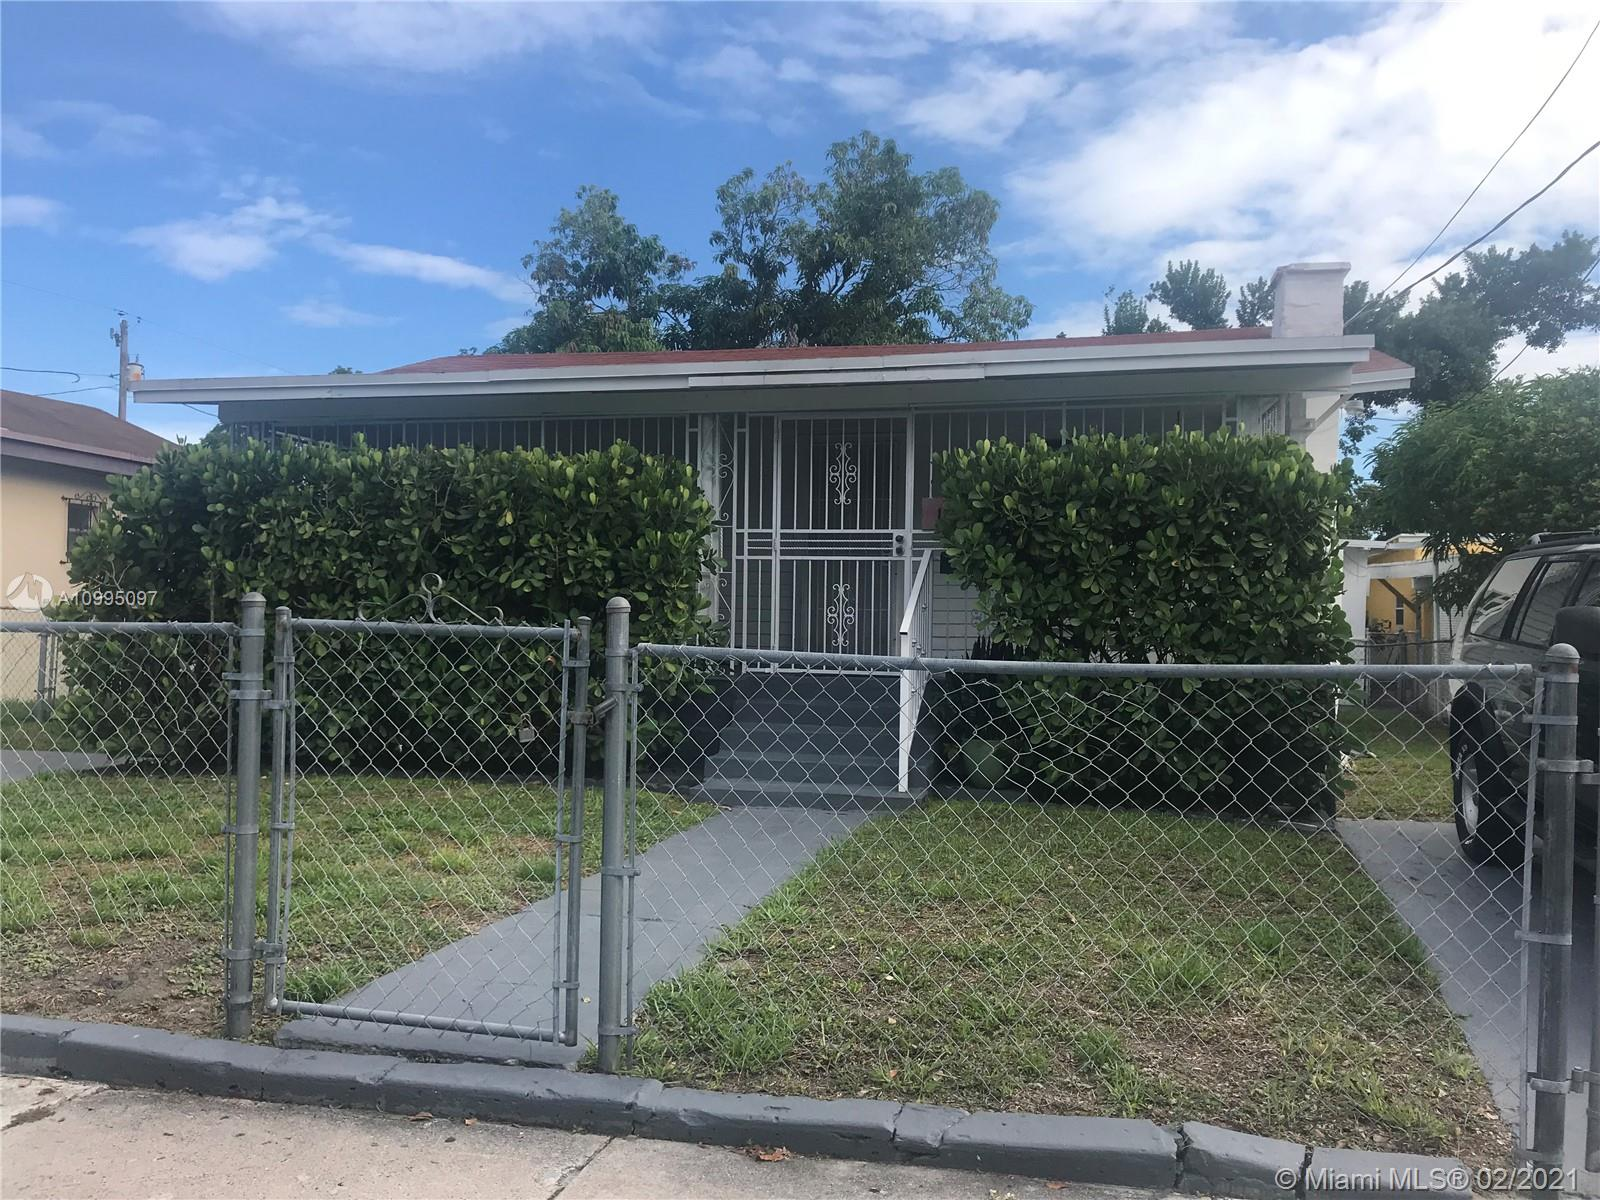 Details for 112 33rd, Miami, FL 33127